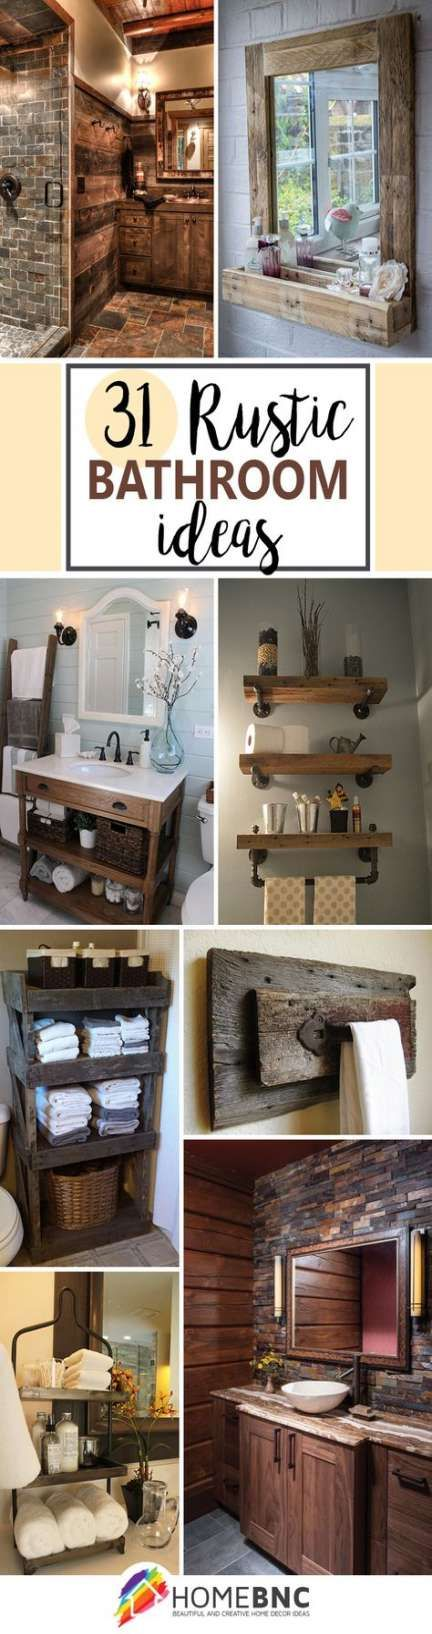 53 Ideas Bath Room Country Decor Cabin For 2019 Rustic Bathrooms Rustic Bathroom Decor Bathroom Design Decor